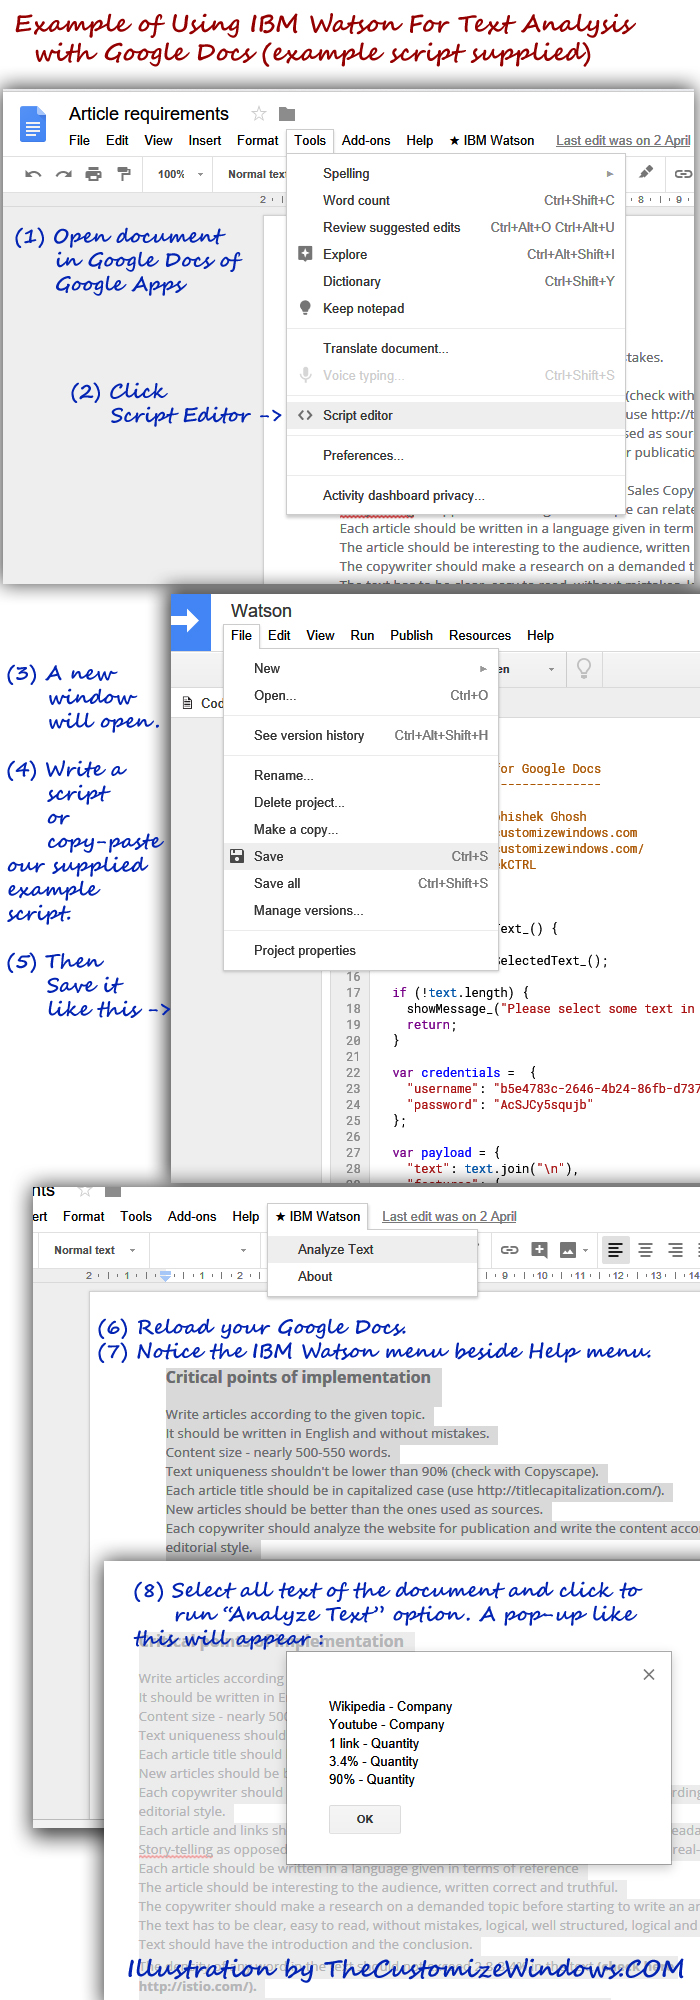 Example-of-Using-IBM-Watson-For-Text-Analysis-with-Google-Docs